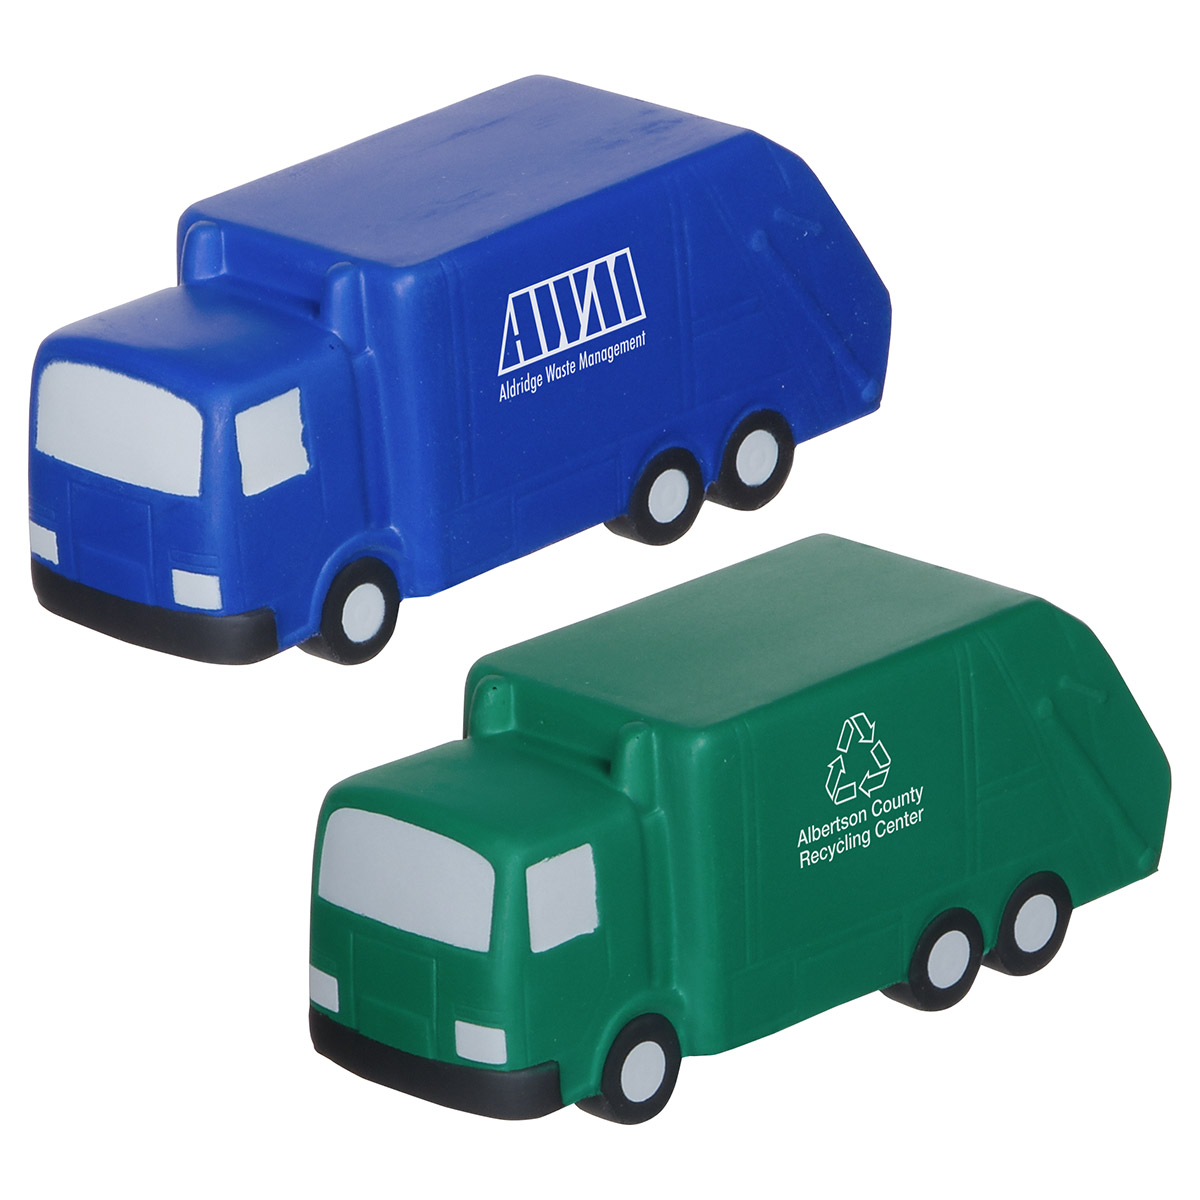 Garbage Truck Stress Reliever, LCC-GB09 - 1 Colour Imprint